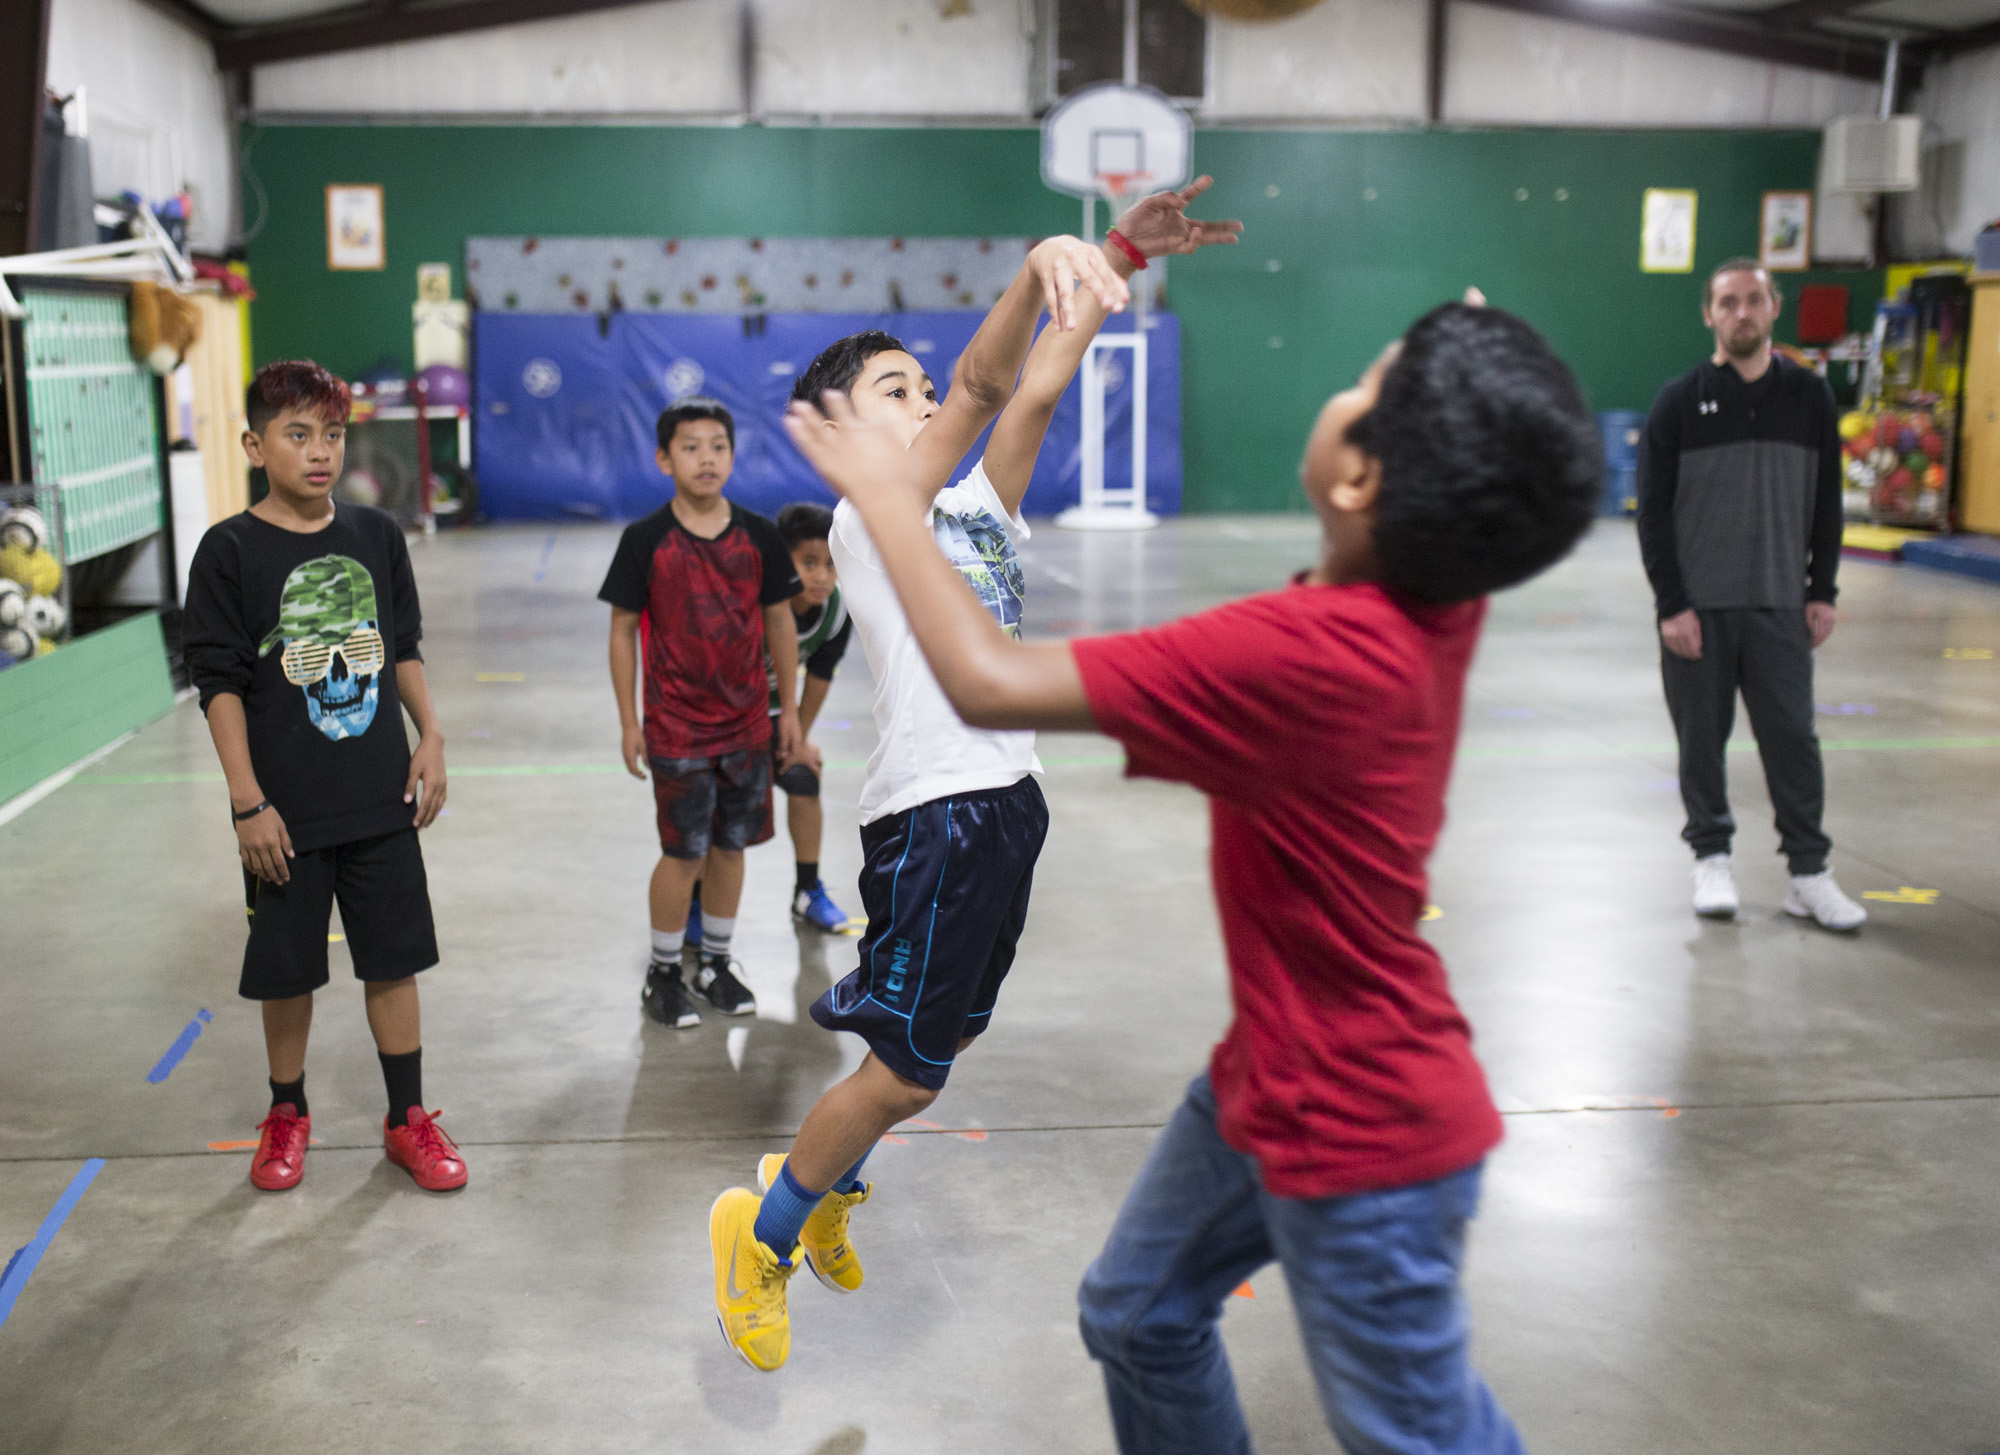 Daniel Juda 10 shoots a basket during a program called Language and Layups at Robert E. Lee Elementary School in Springdale, February 14, 2018.